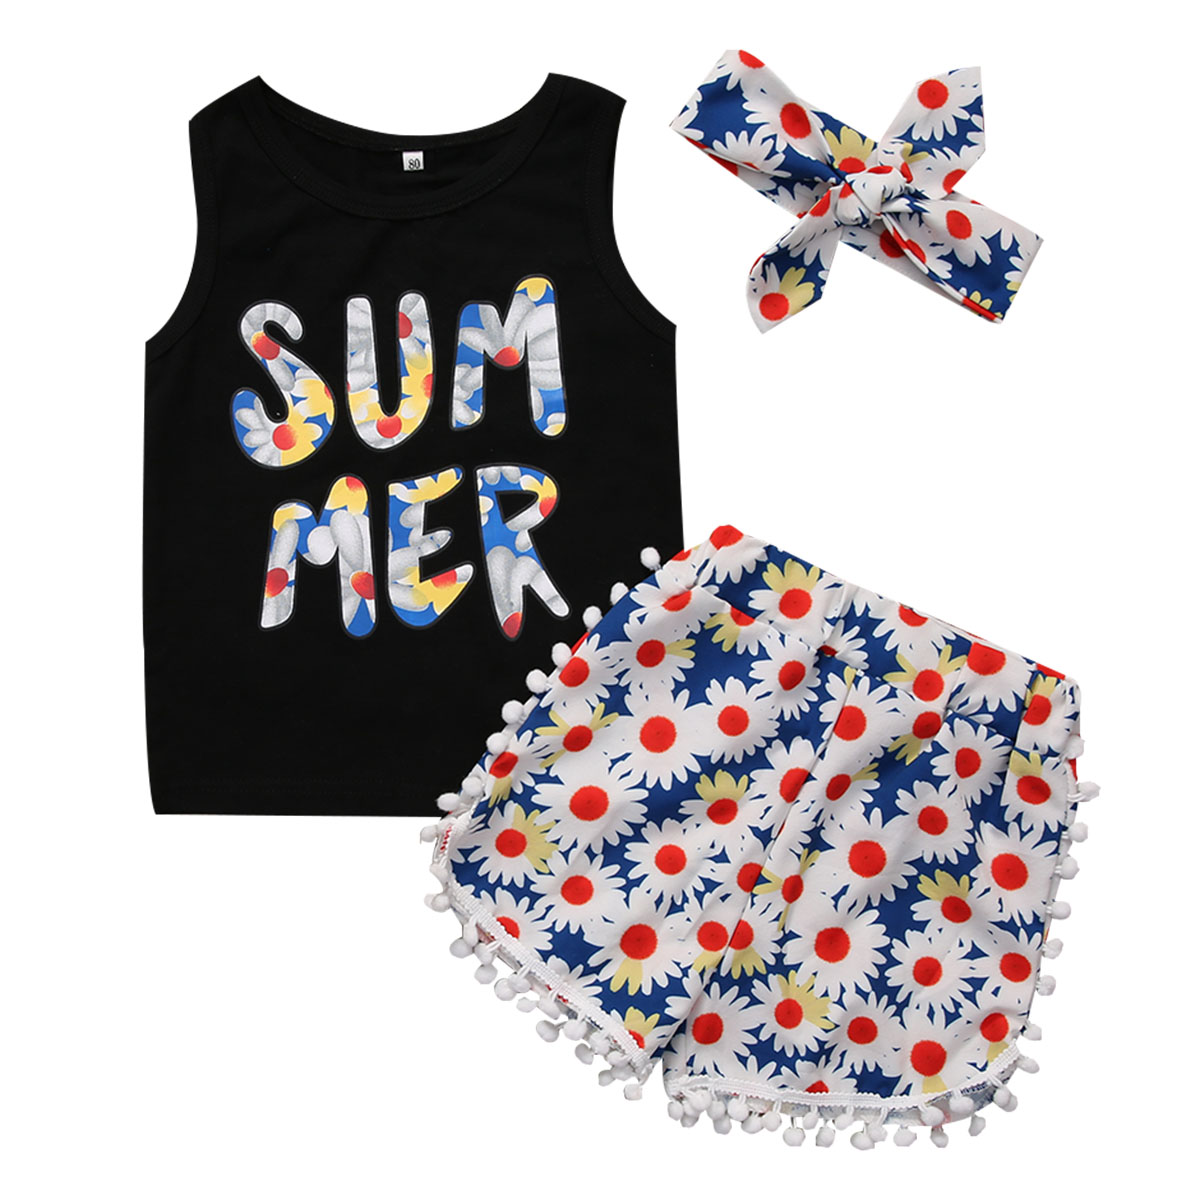 3PCS Kids Girls Clothes Set 2017 Summer Vest Tops Floral Tassel Short Pants Headband Outfits Children Clothing Set Age 2-7Y 3 pcs set girls baby clothing sets sleeveless shirt tops floral pants headband vogue clothes 2 6 year hot selling